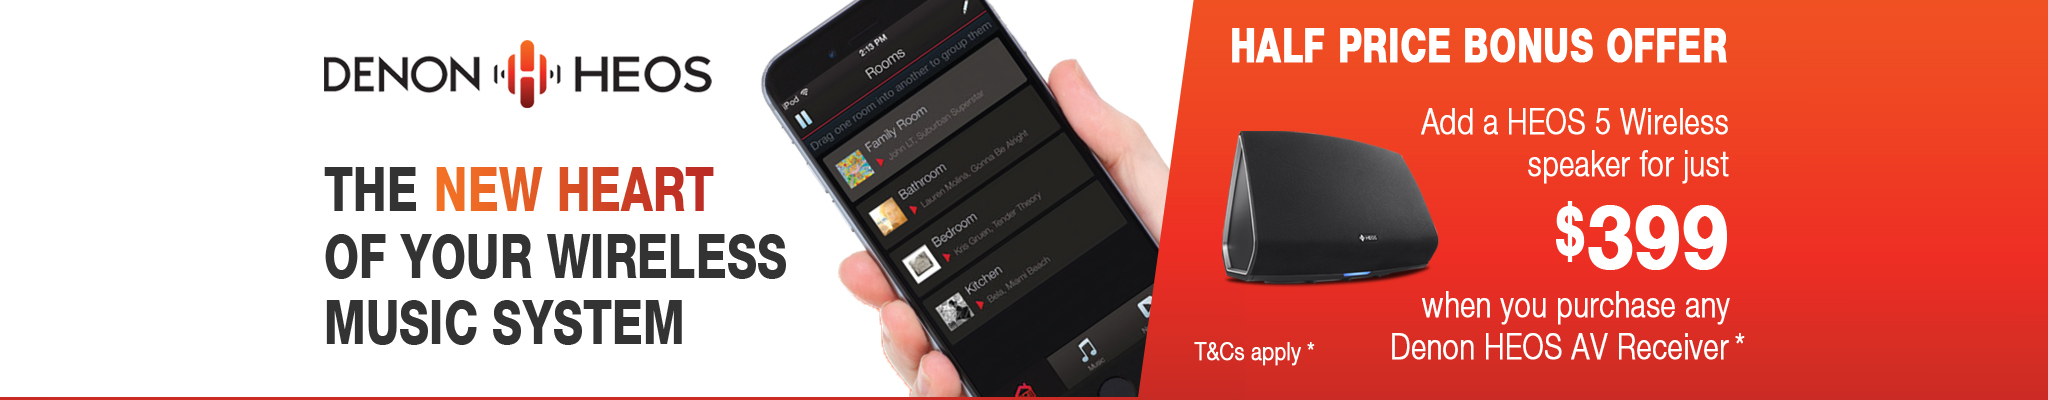 heos-category-banner-with-app-5